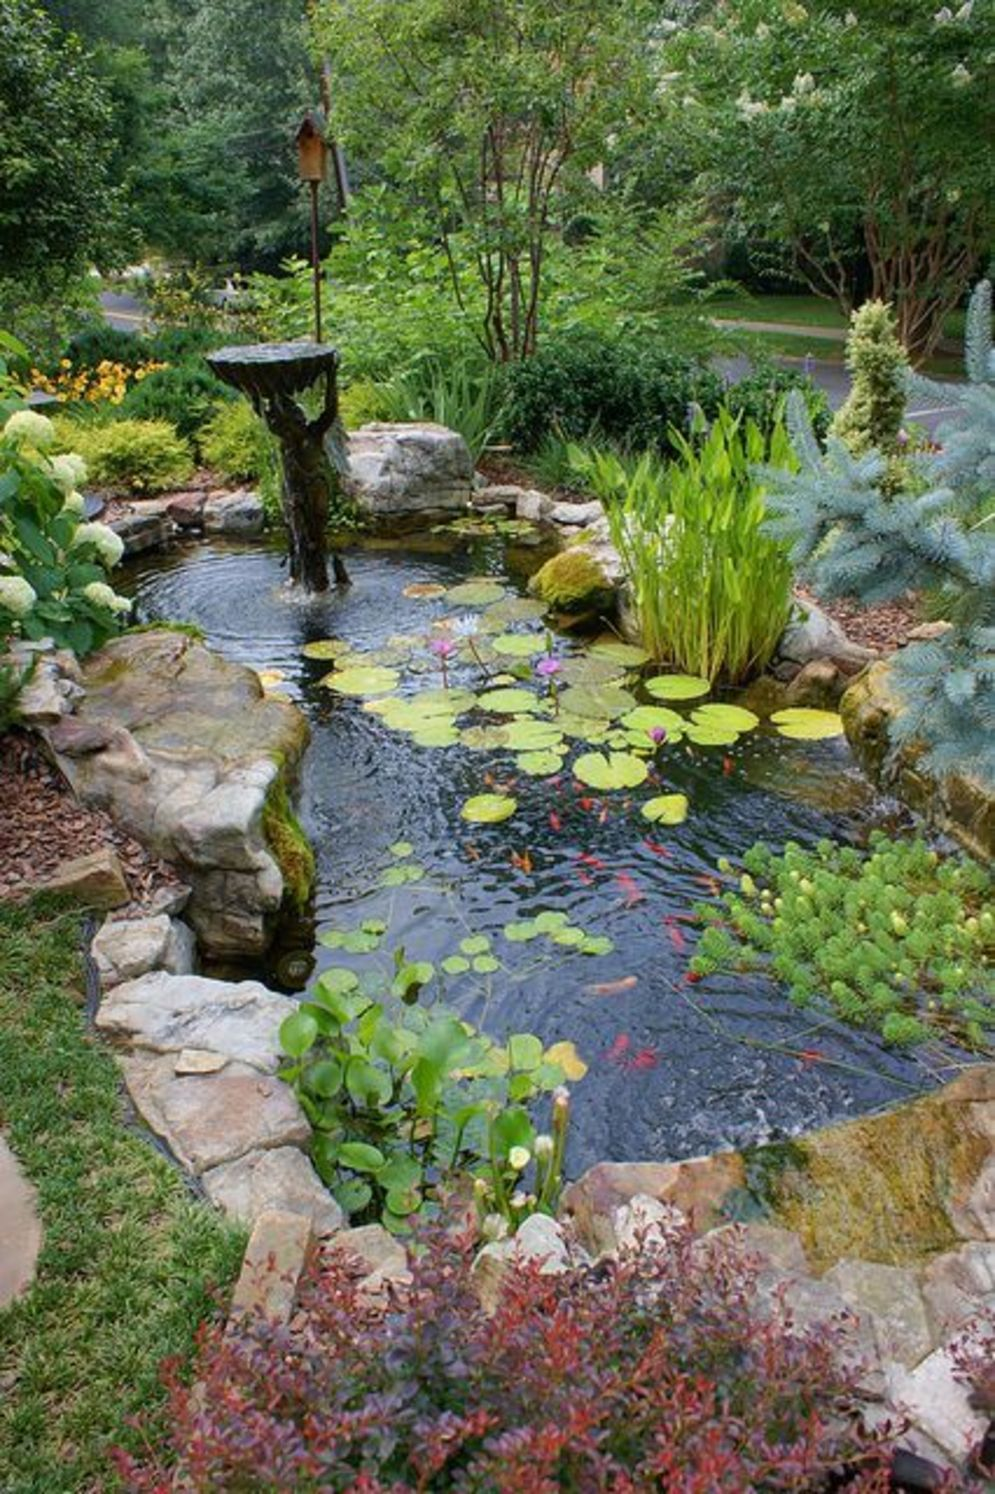 Stunning 5 Small Fish Pond Designs Look Perfect for Improving